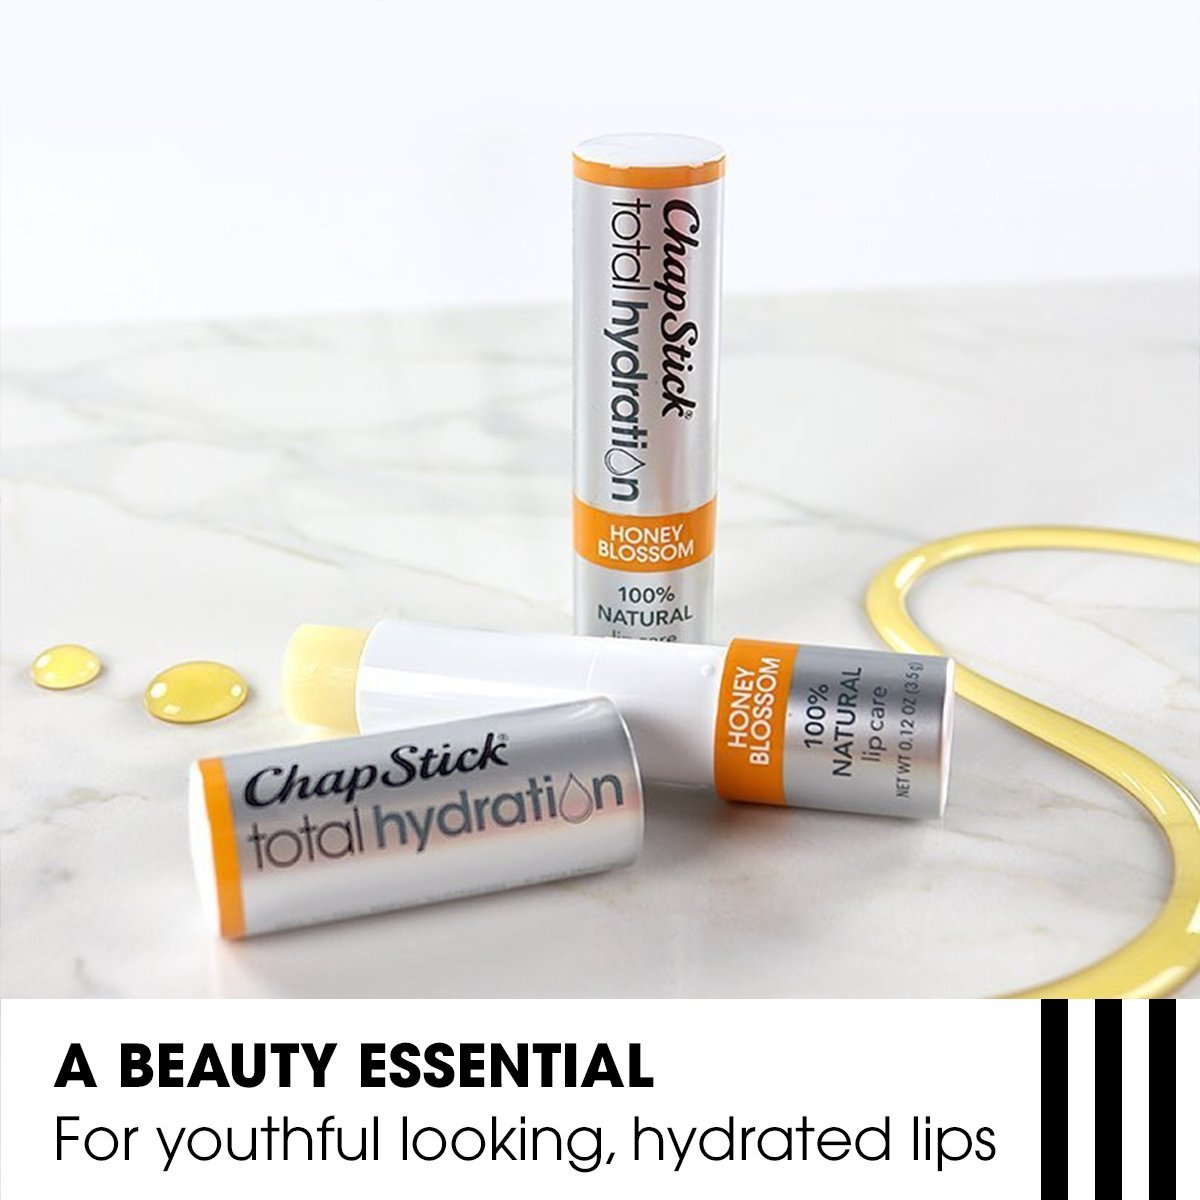 Total Hydration 100% Natural Lip Balm by chapstick #14